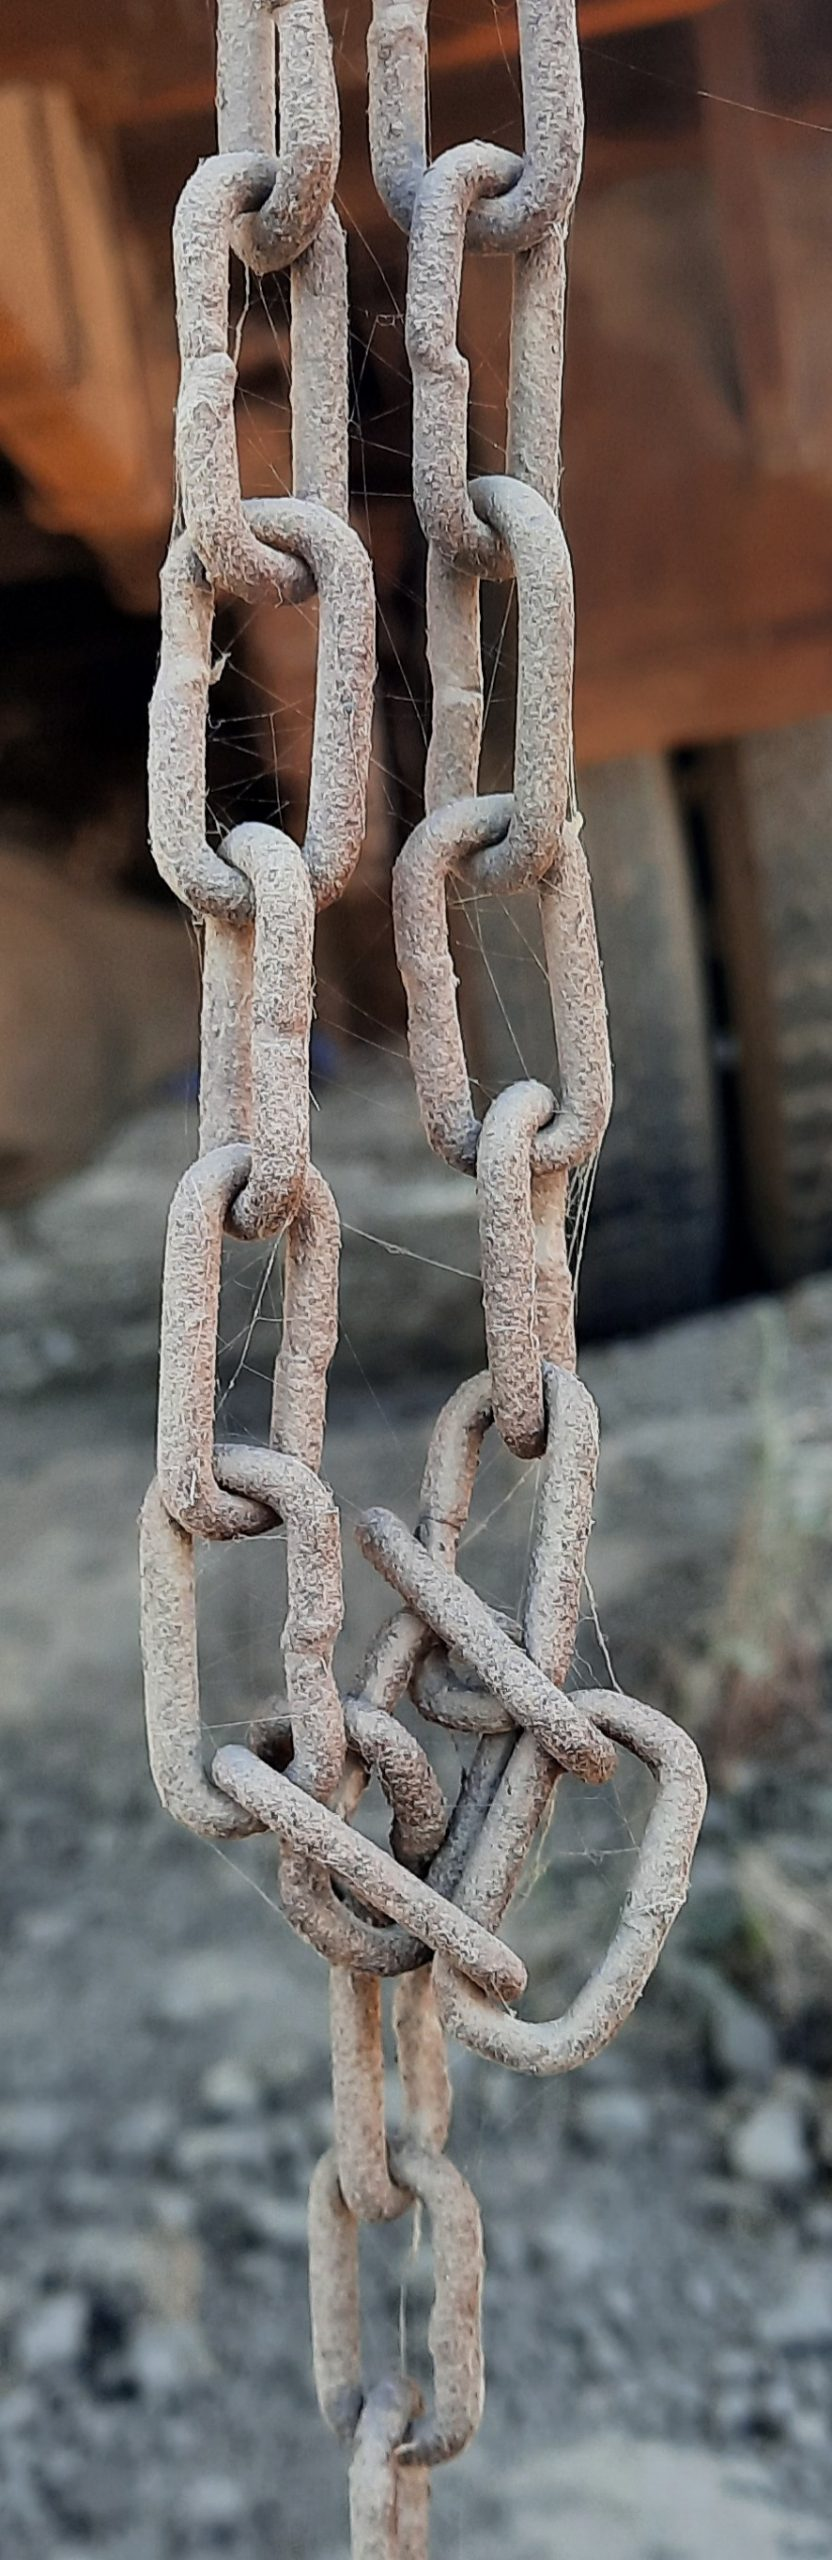 Old Iron Chain